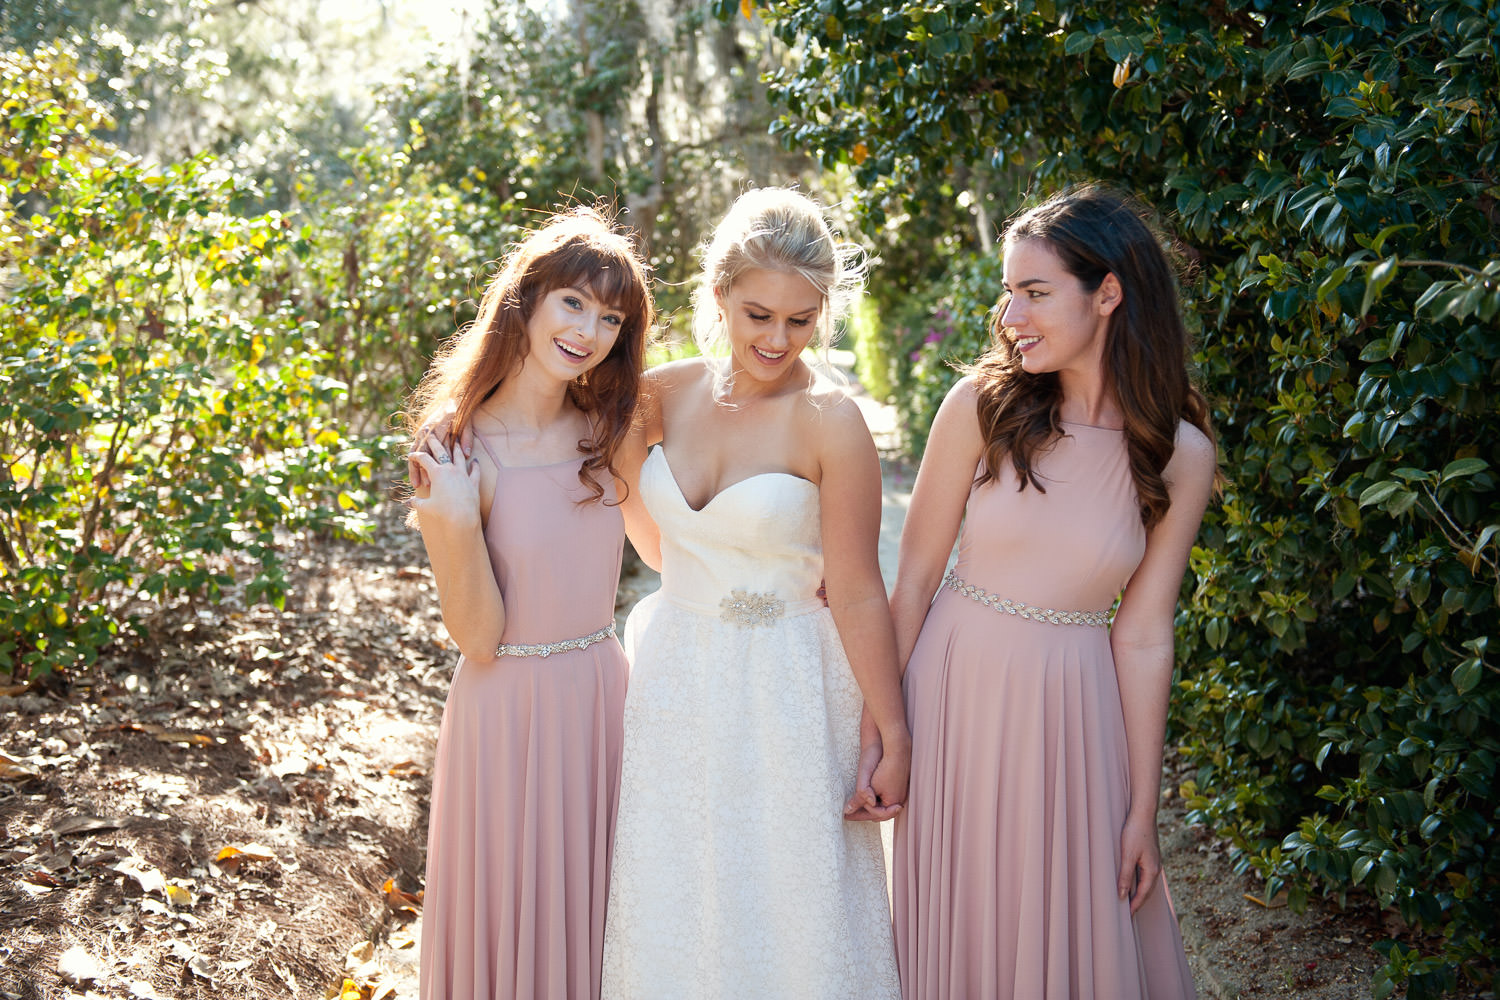 Bride with her two bridesmaids captured by Tara Whittaker Photography